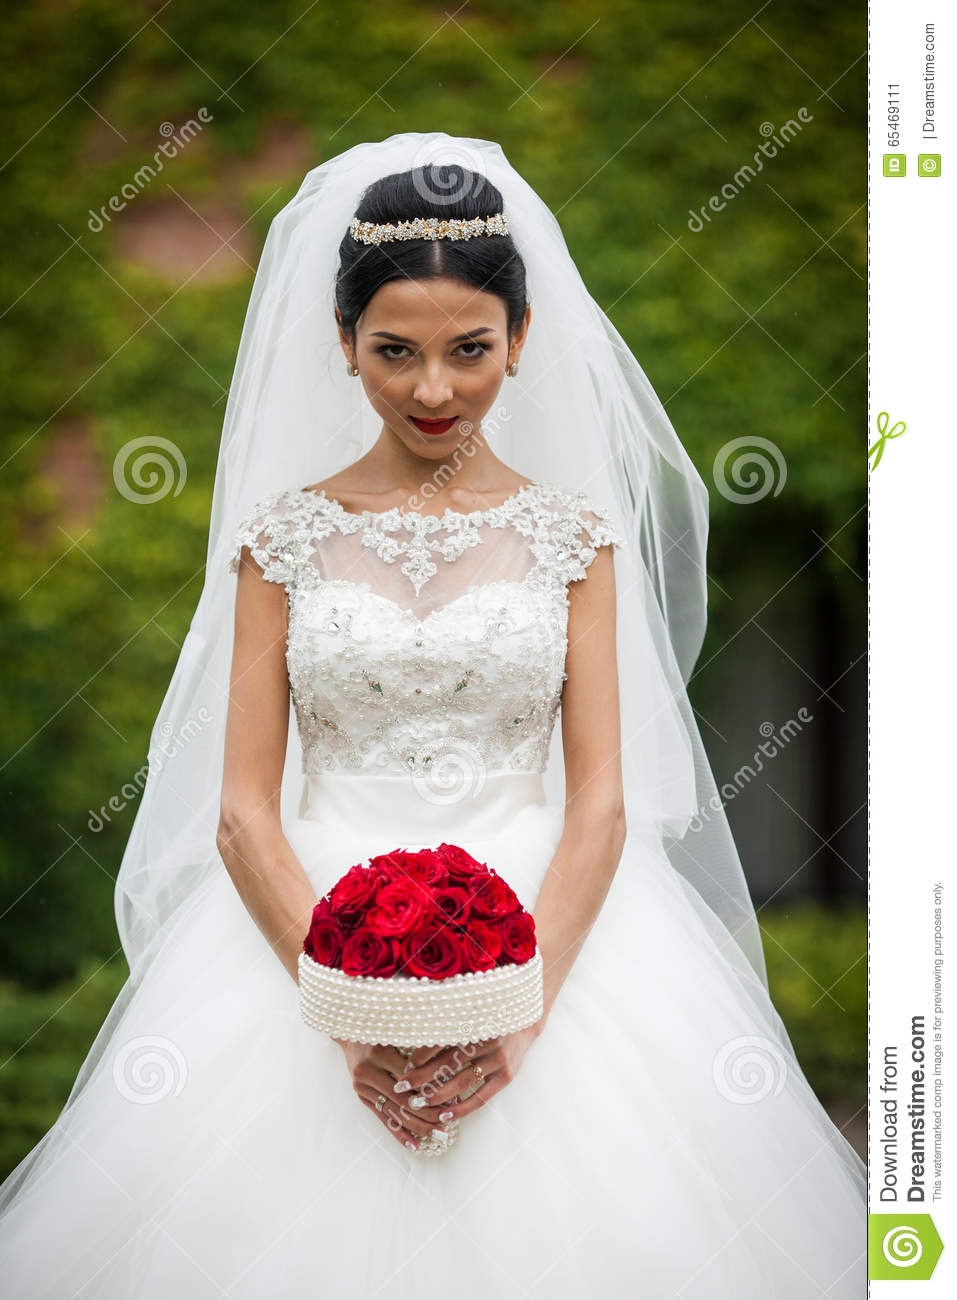 Brunette Bride In Vintage Stylish White Dress With Red Rose Stock